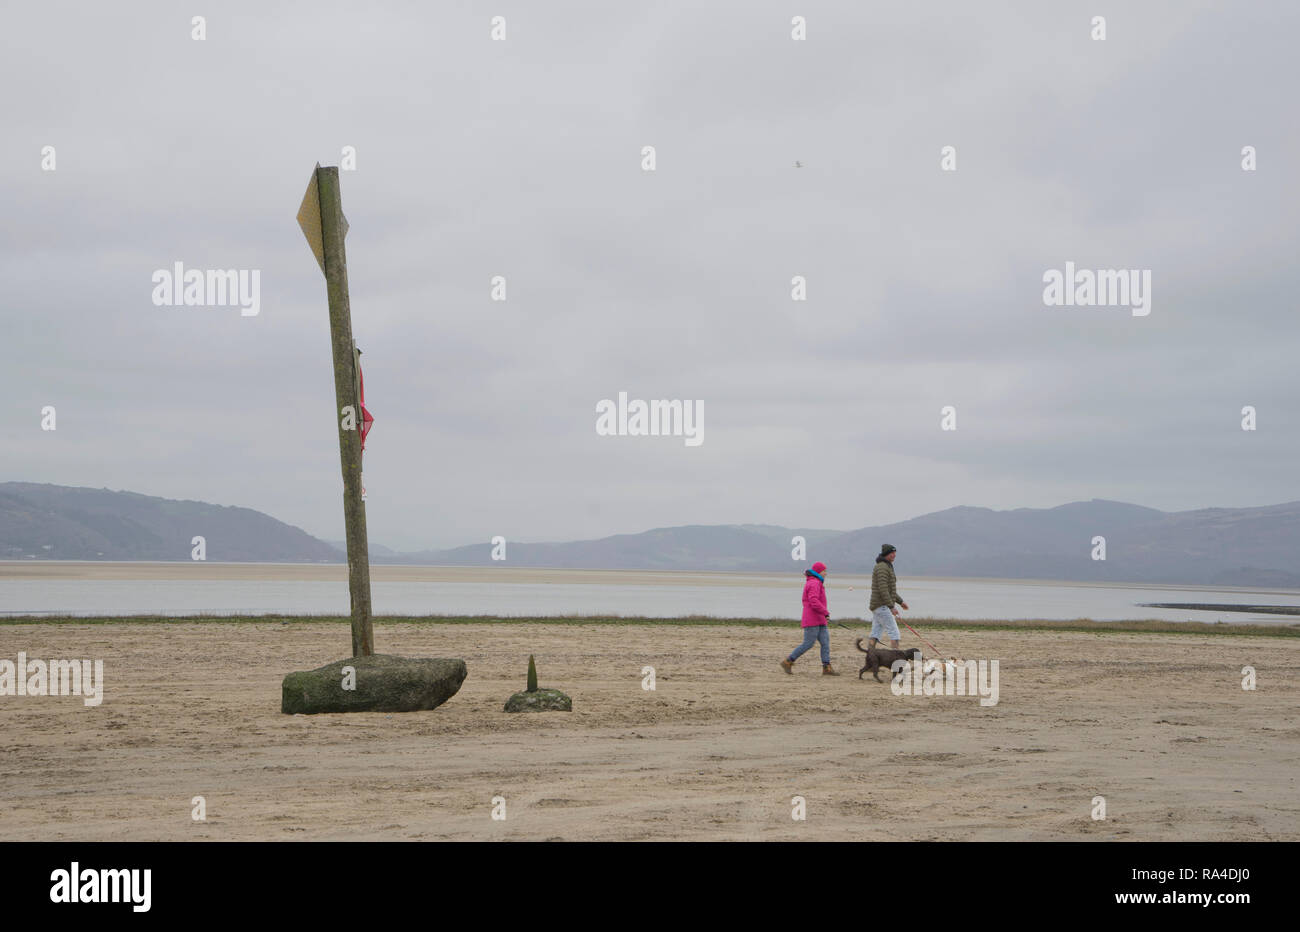 People walking their dogs on the beach in Ynyslas at the Dyfi estuary, near Borth and Aberystwyth, Ceredigion,Wales,UK Stock Photo